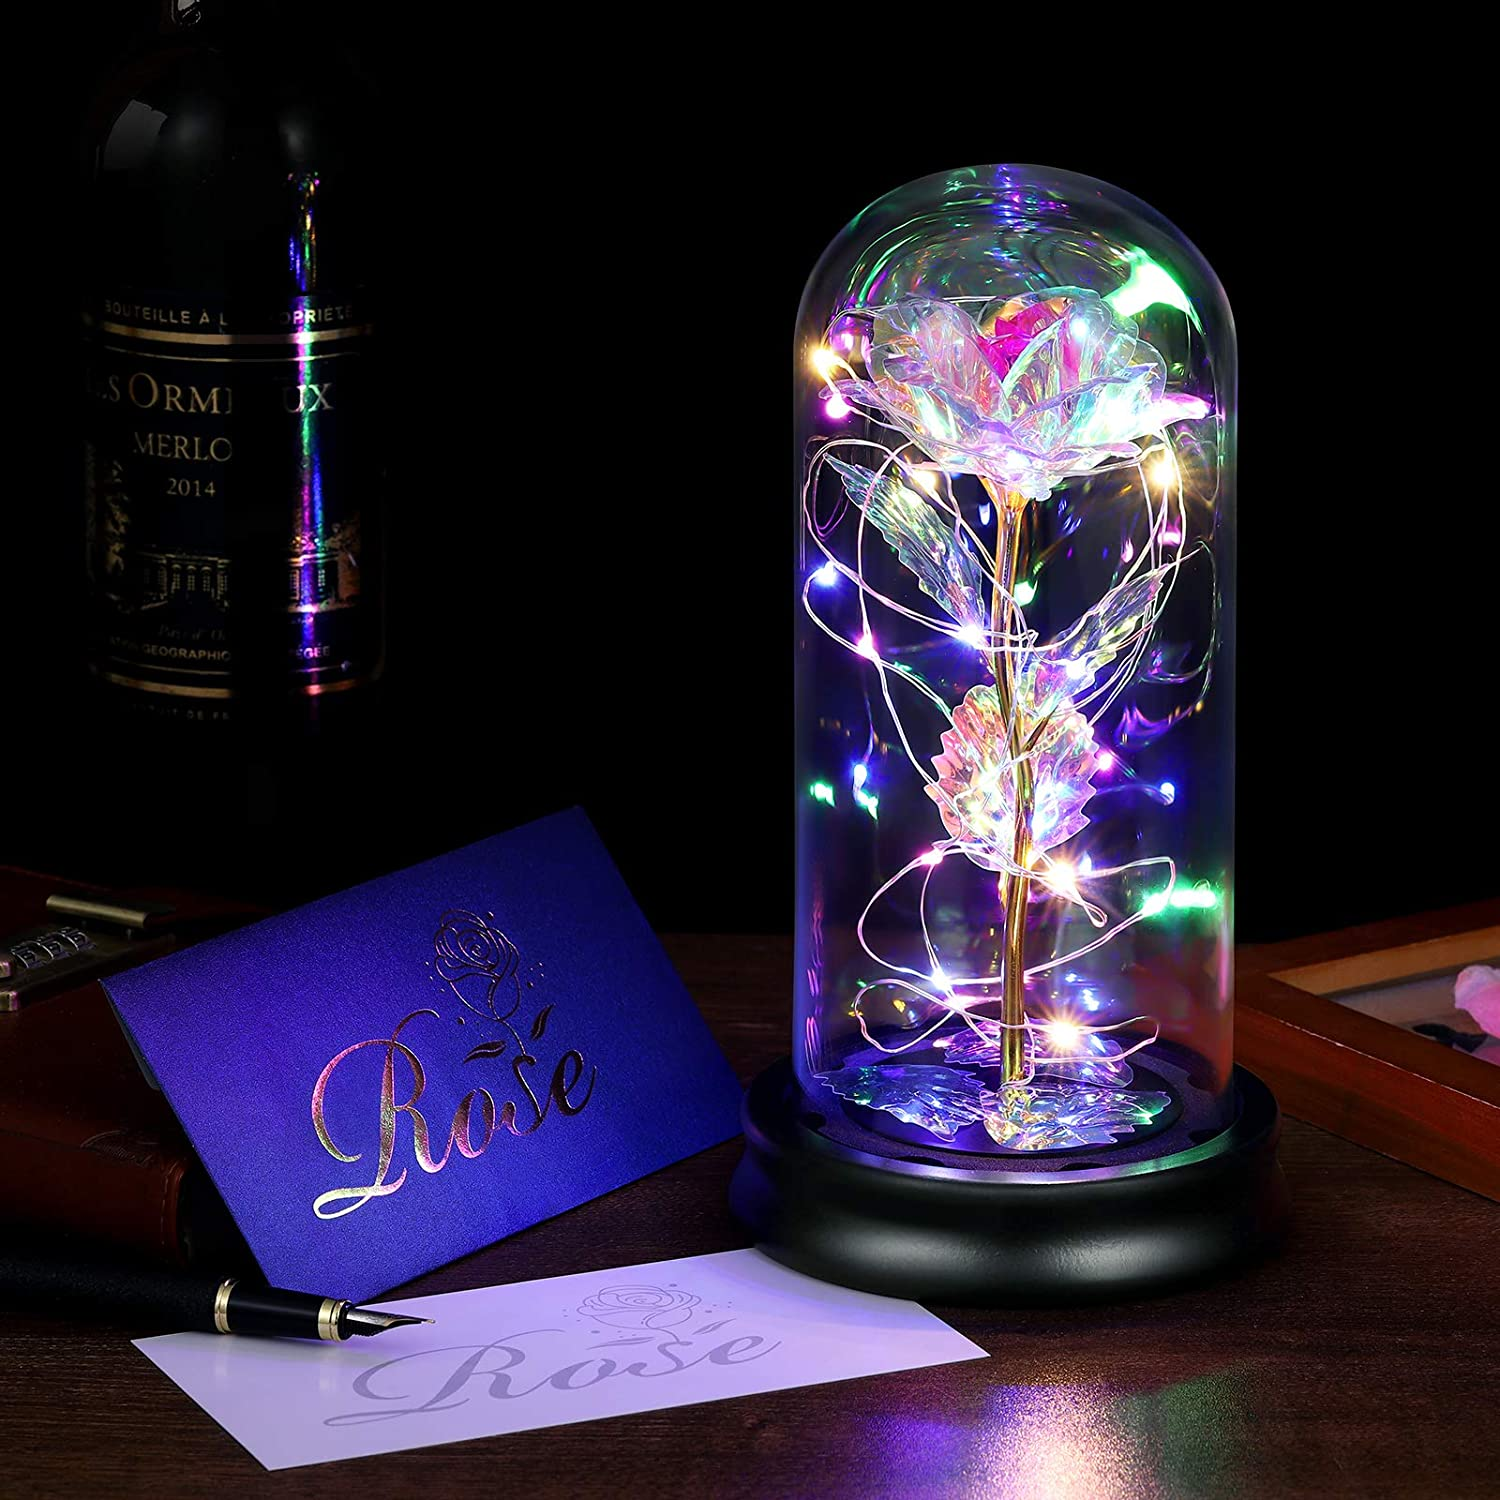 Flower Led Light, Beauty and The Beast Rose in Glass with Colorful Decorative Lamp Flower Gift